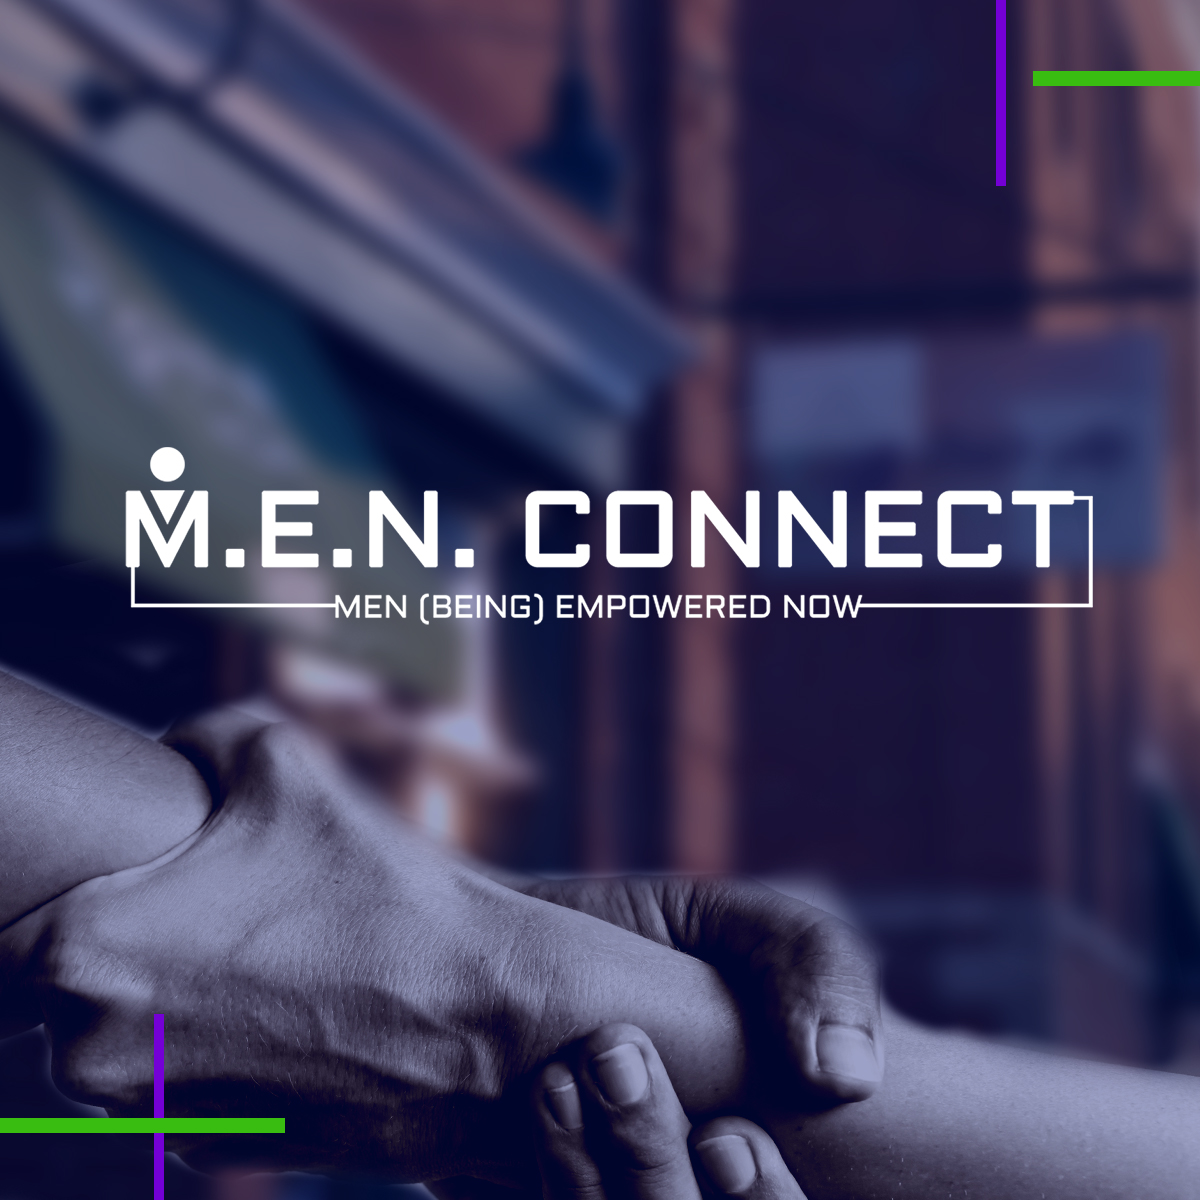 Men Connect